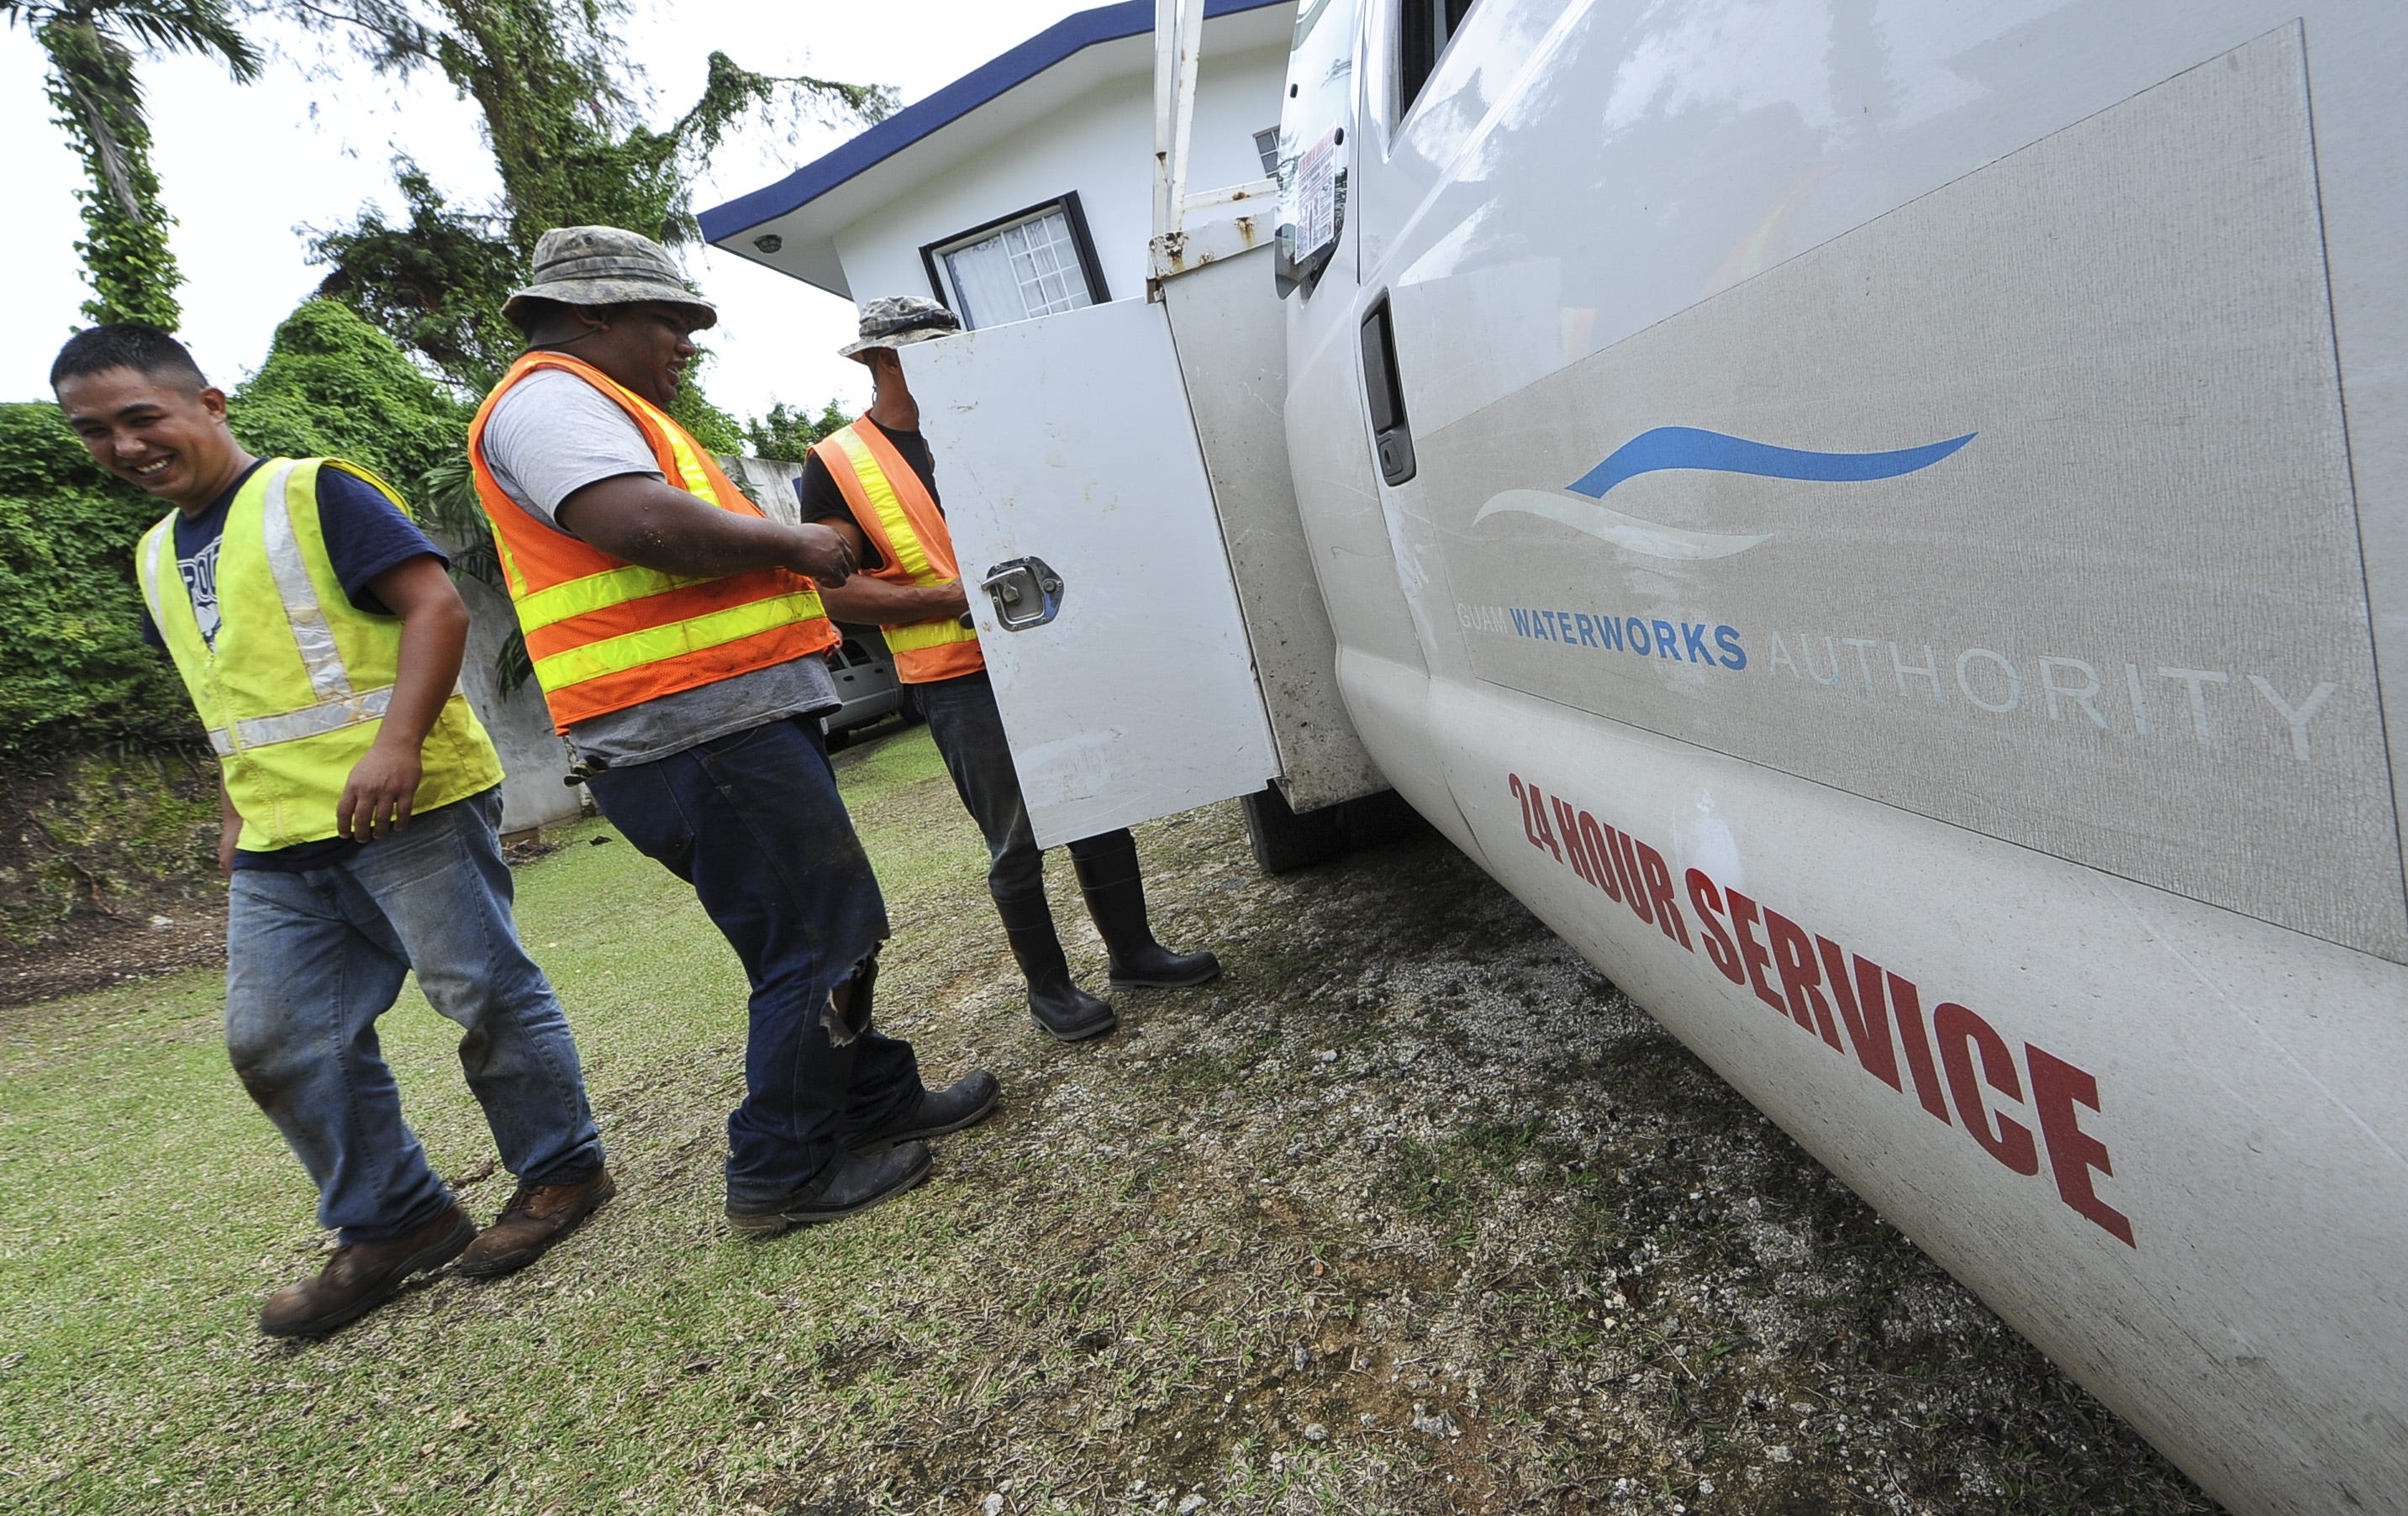 Guam Waterworks Authority employees stow tools and equipment after fixing a leaking valve in Agana Heights in 2012.